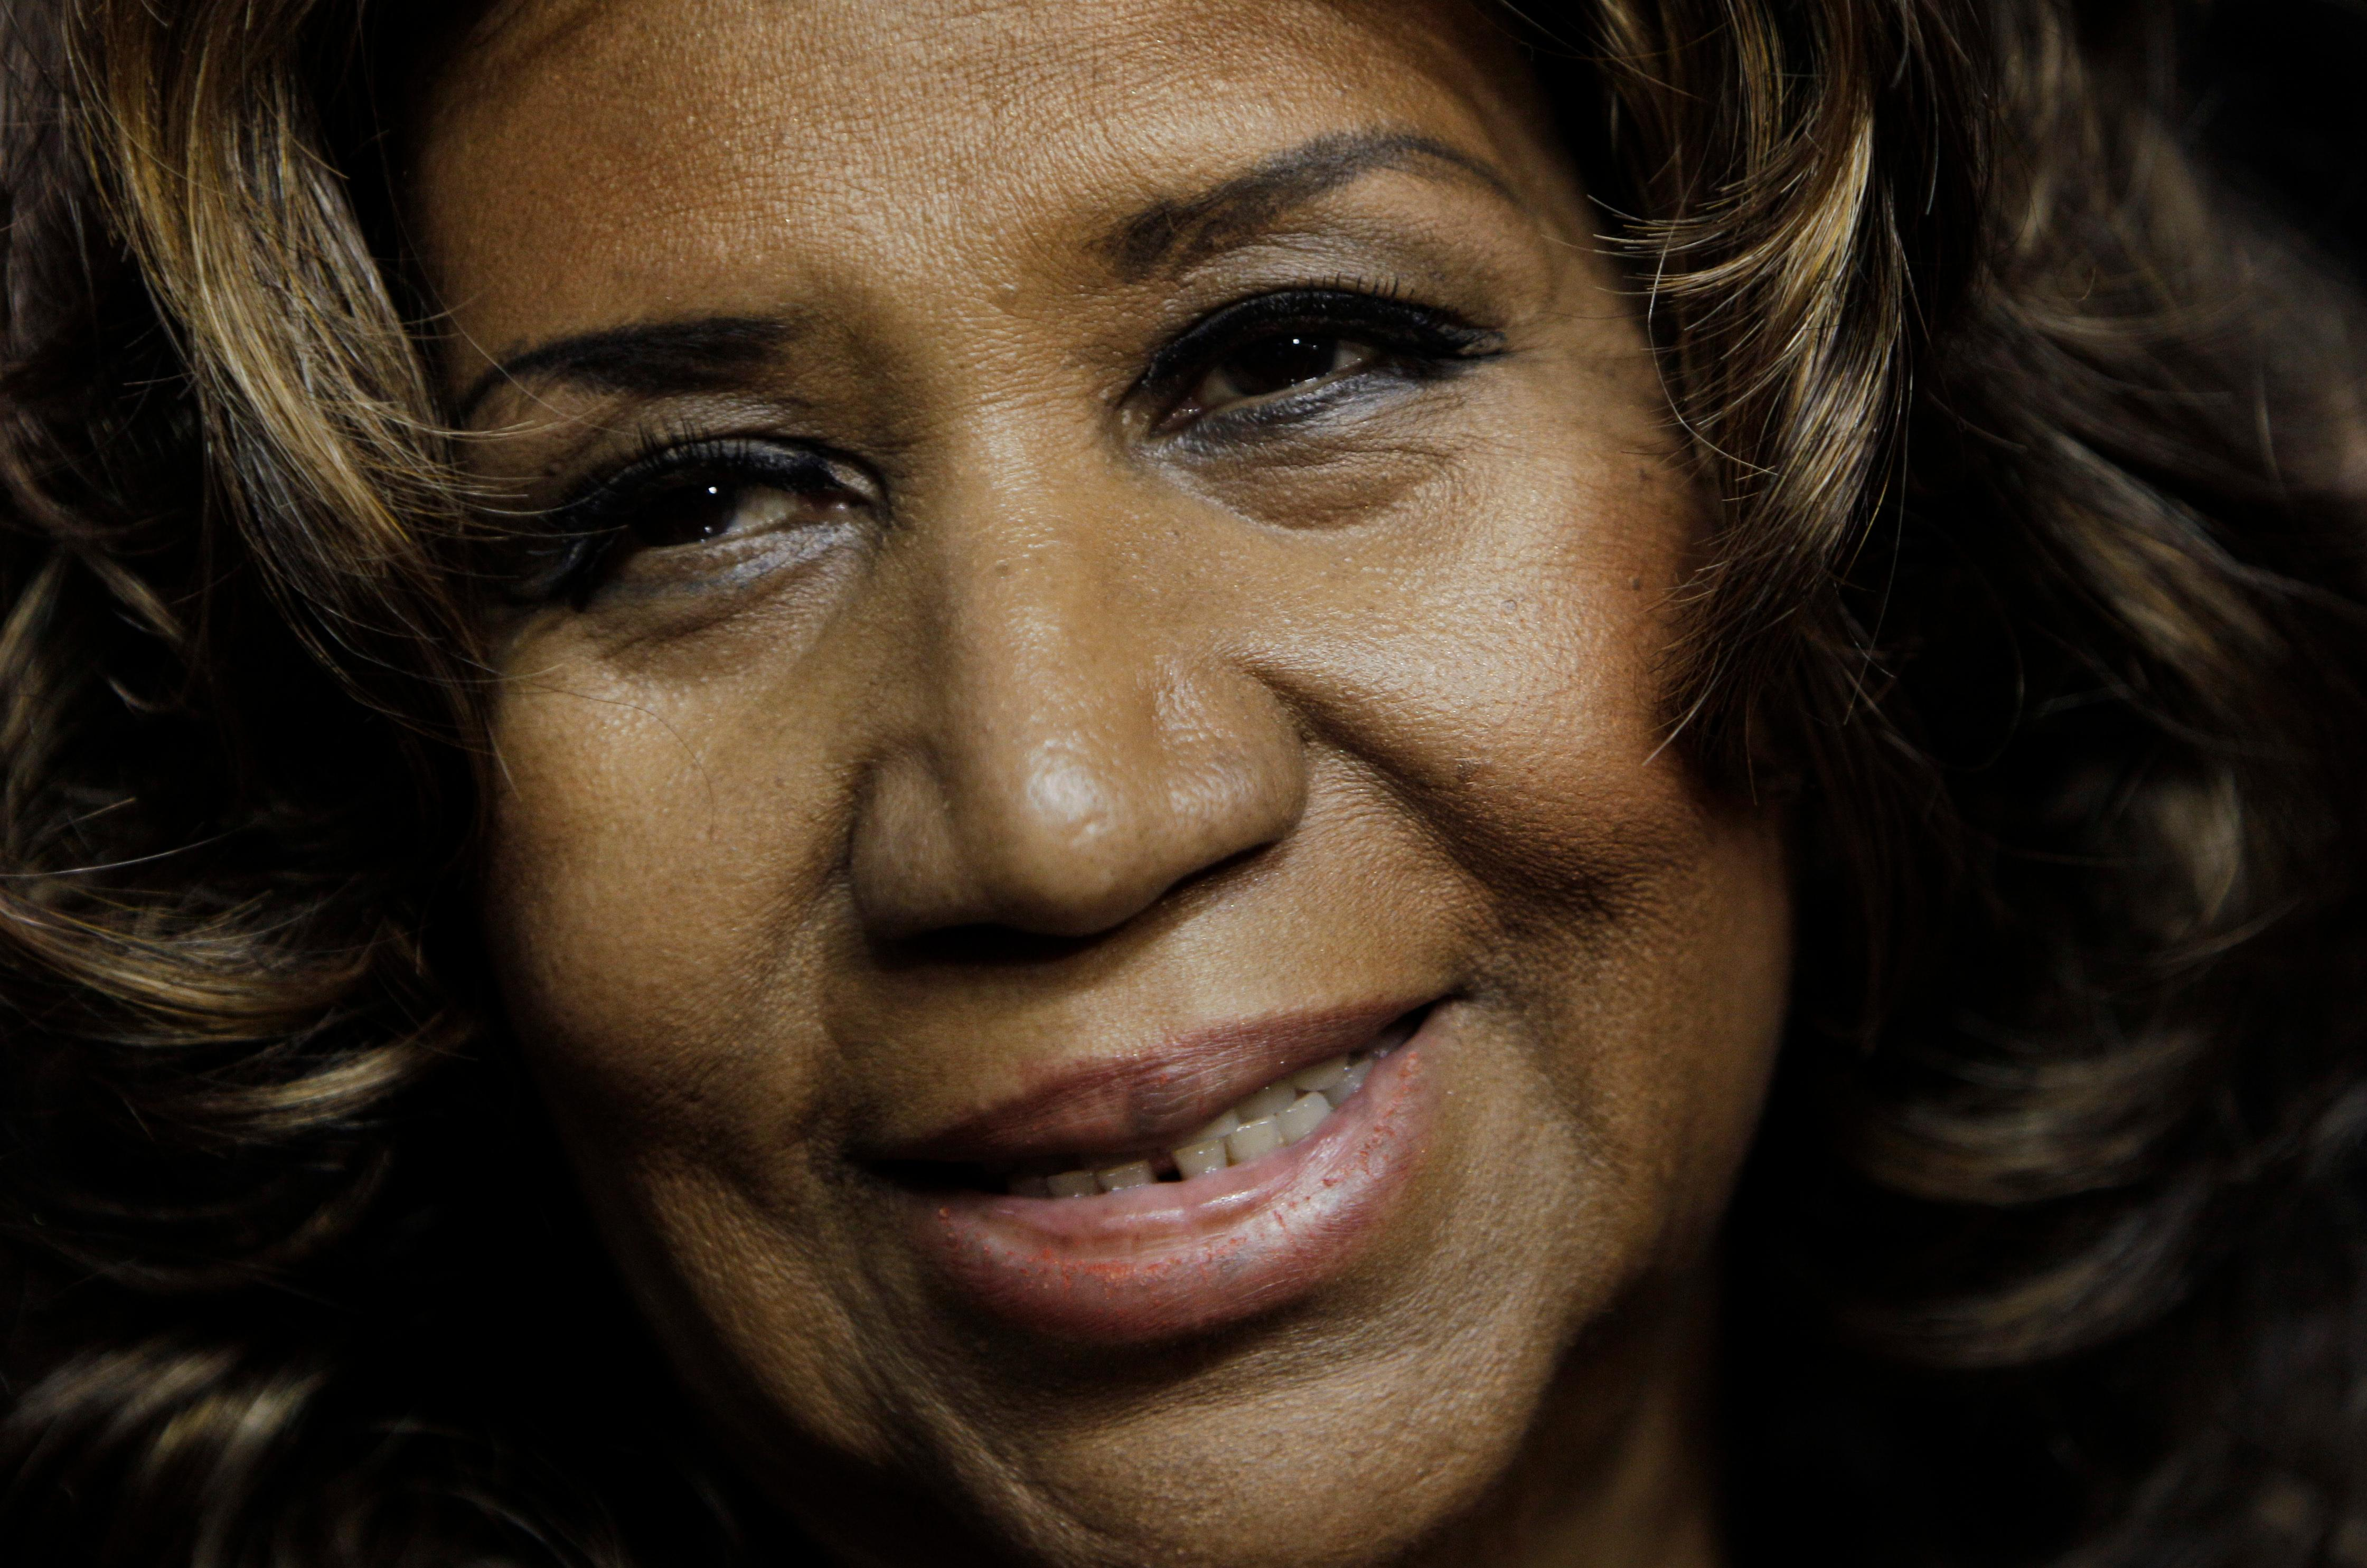 FILE - In this Feb. 11, 2011 file photo, Aretha Franklin smiles after the Detroit Pistons-Miami Heat NBA basketball game in Auburn Hills, Mich.   Franklin died Thursday, Aug. 16, 2018 at her home in Detroit.  She was 76. (AP Photo/Paul Sancya, File)